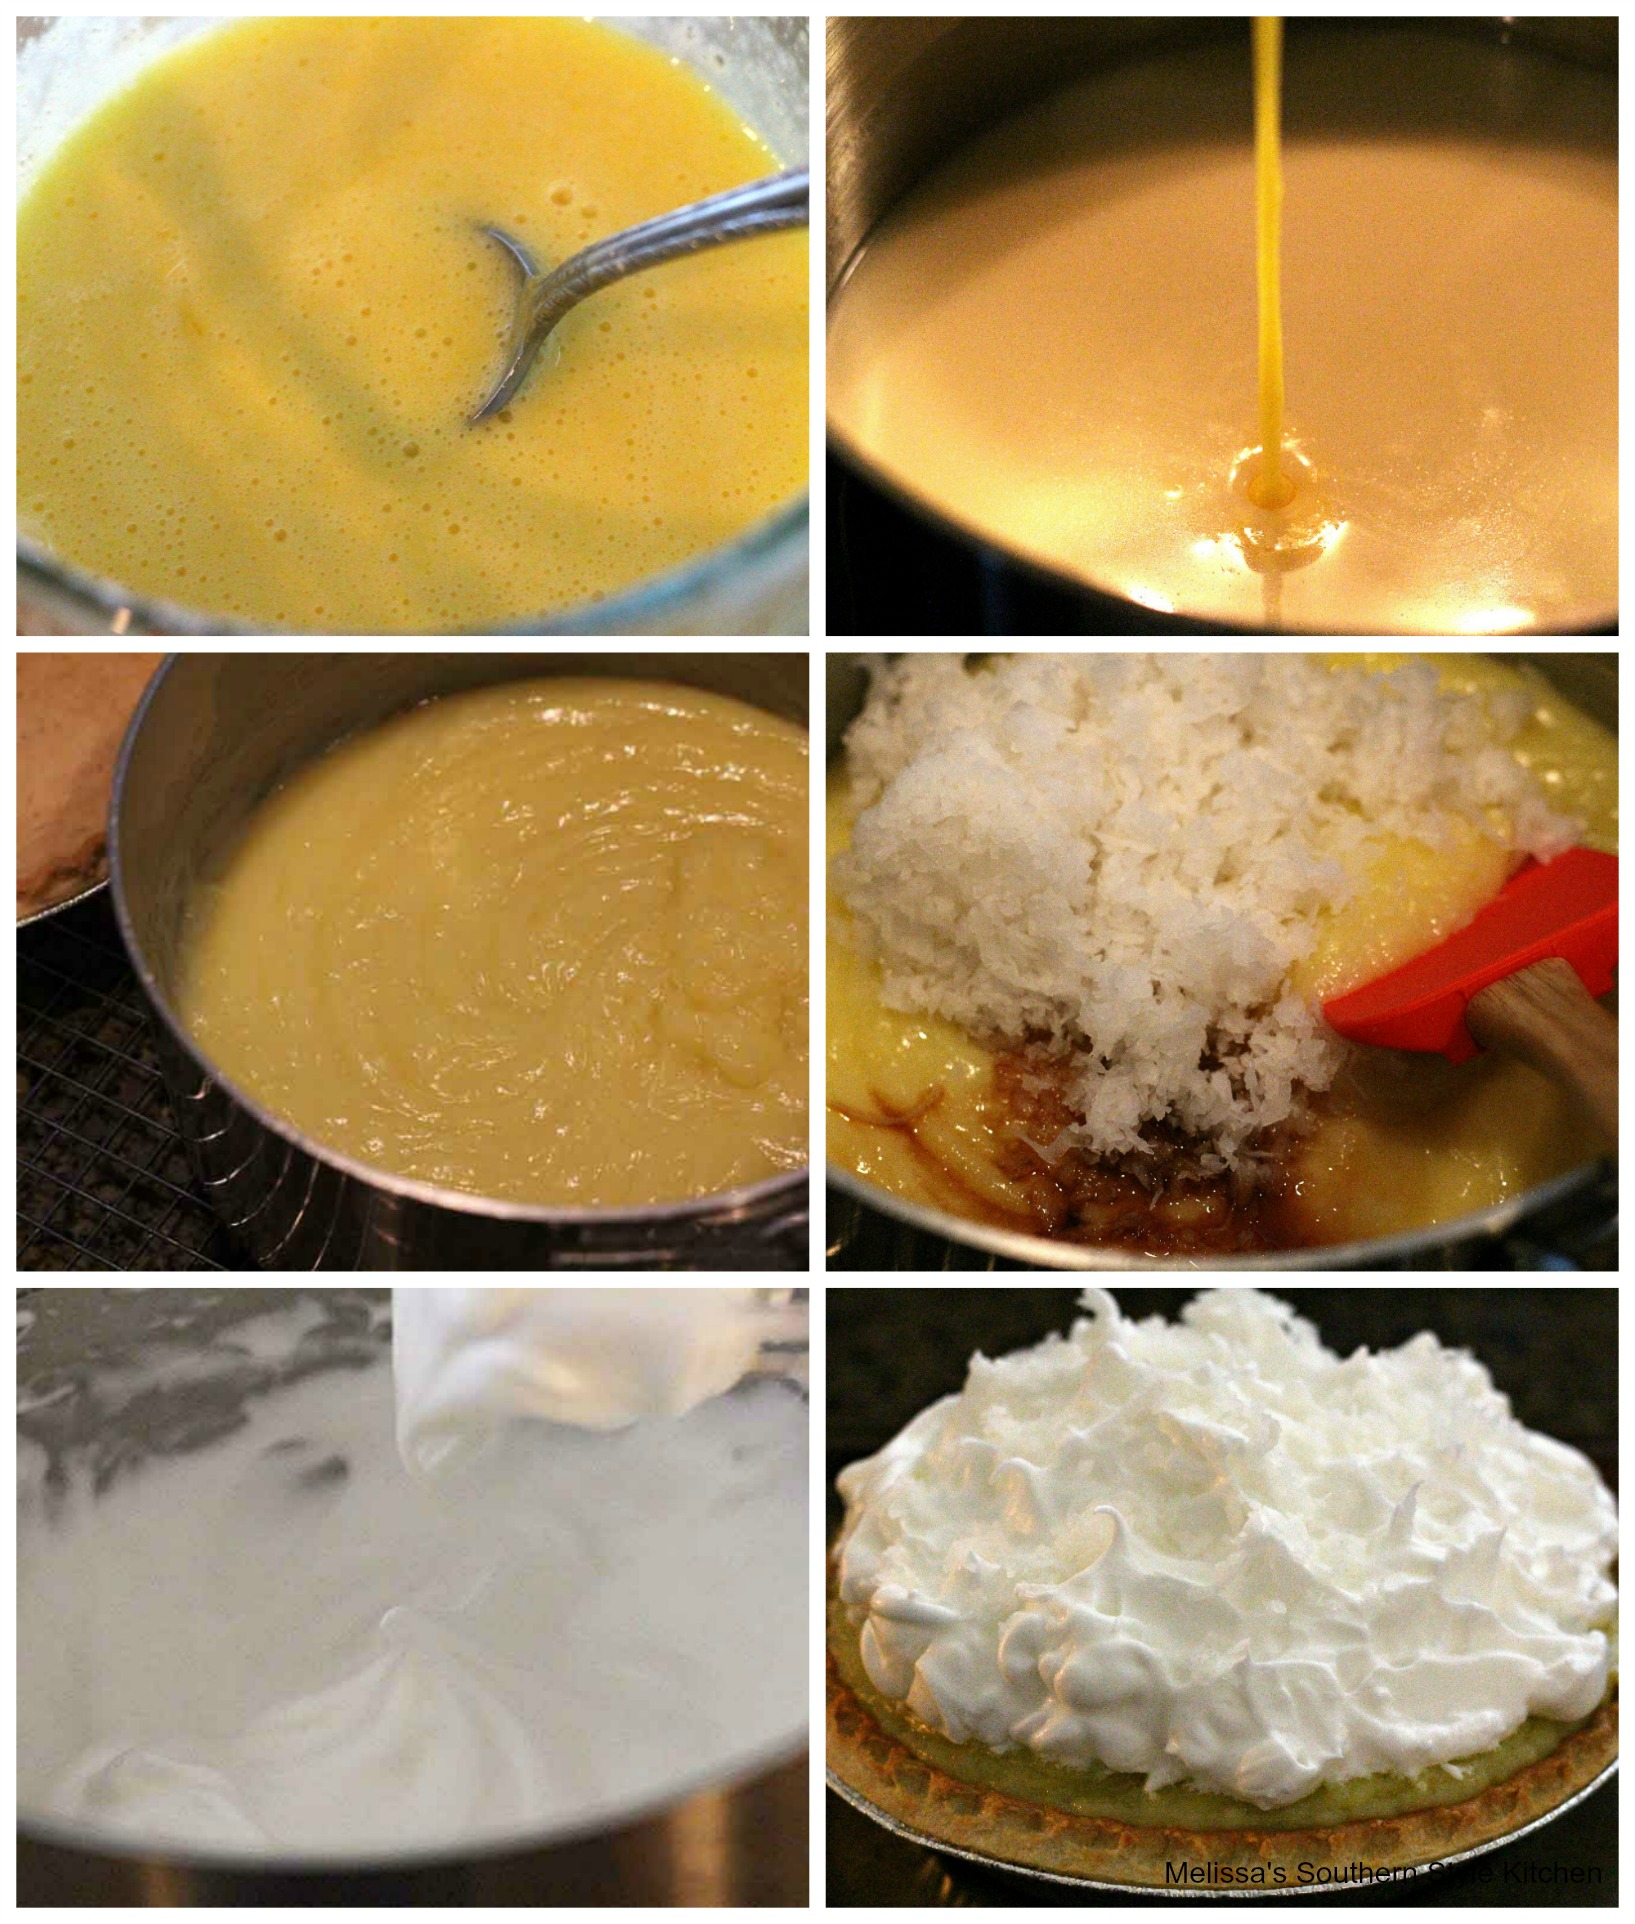 Step-by-step images preparation of pie